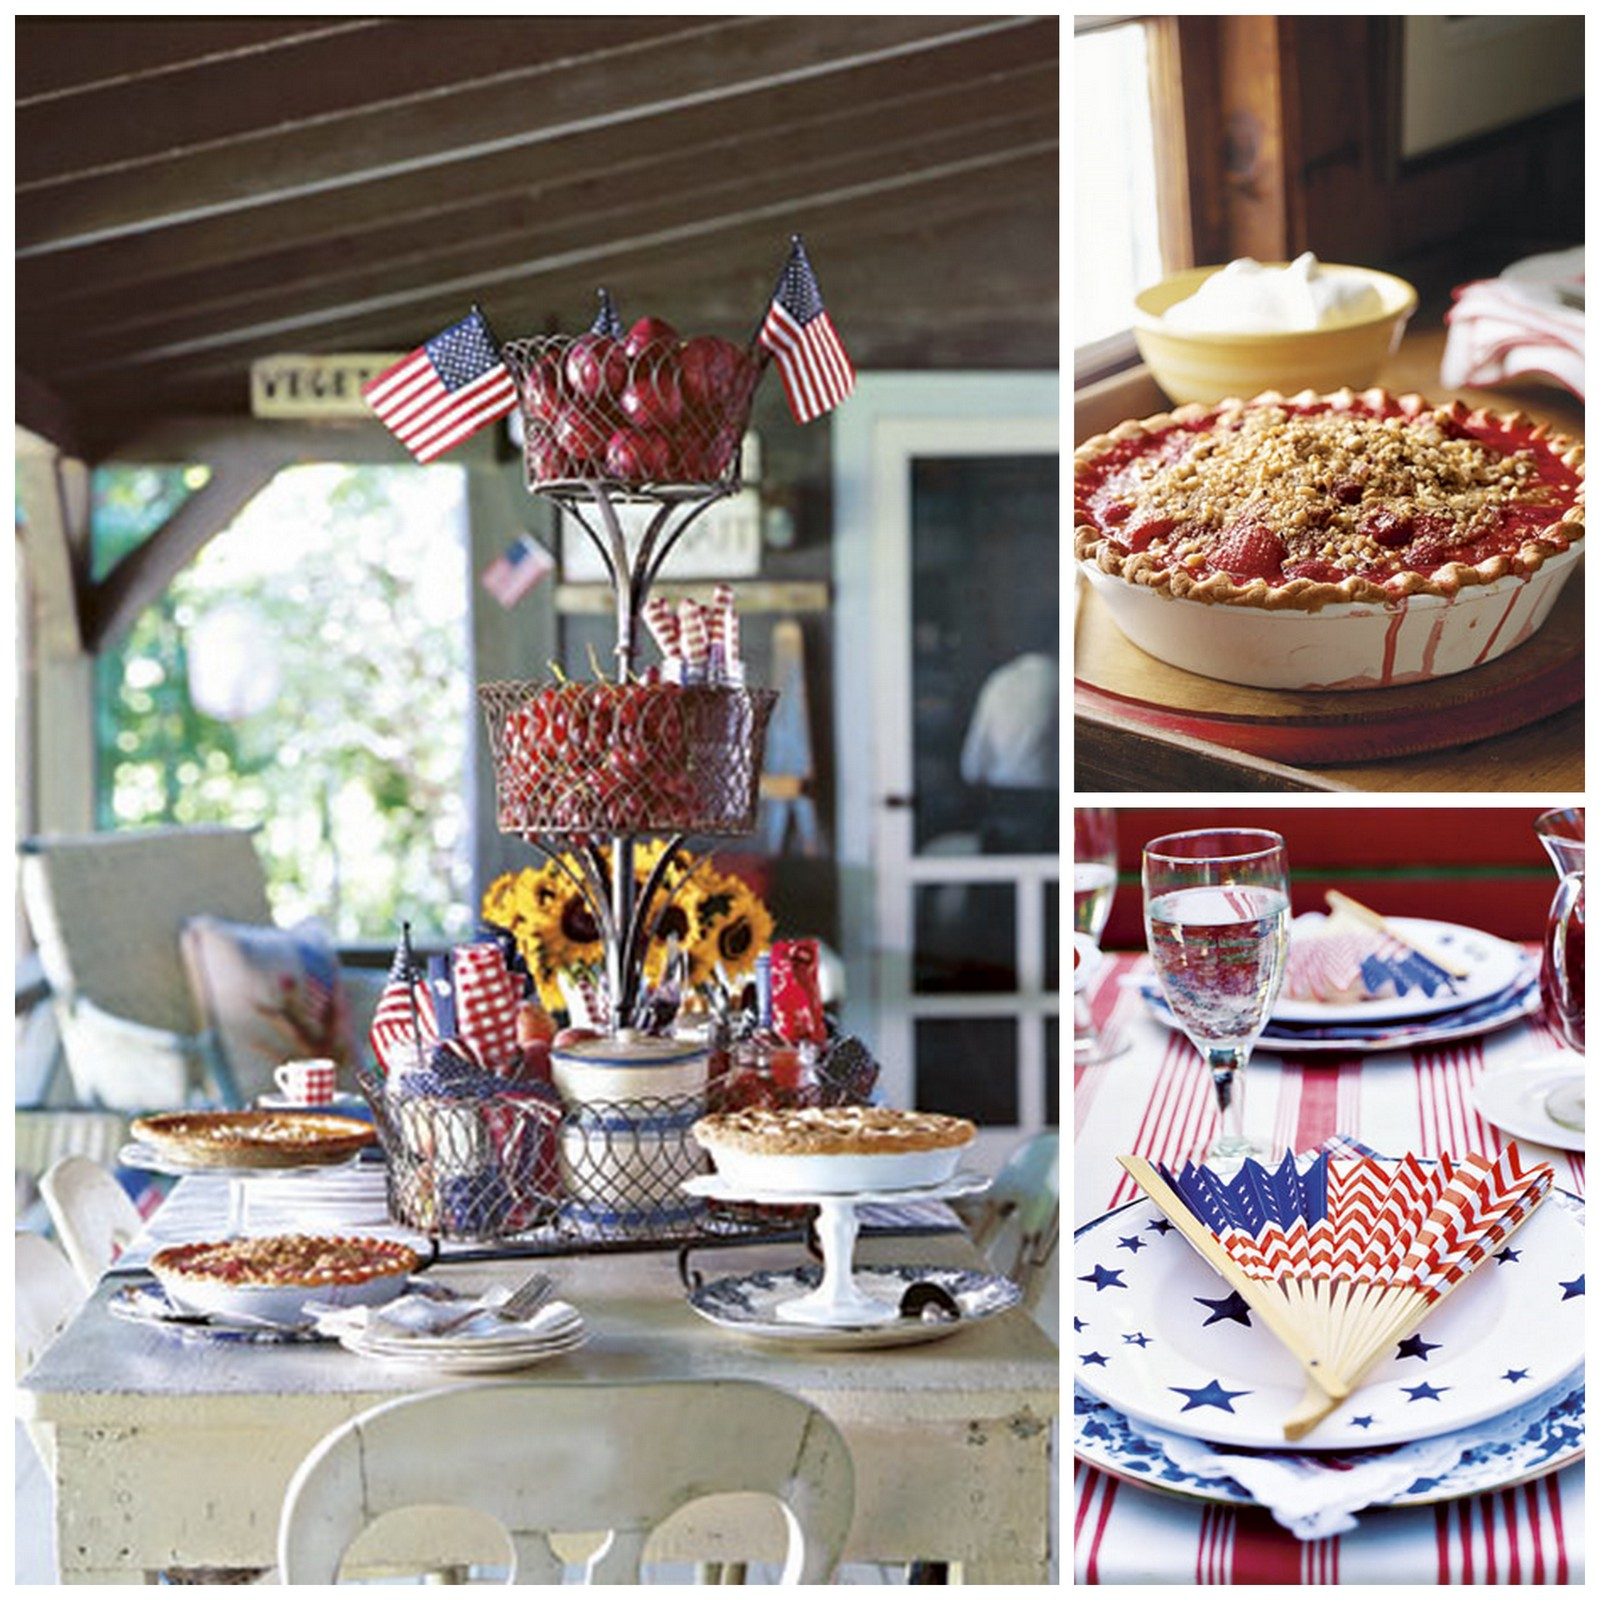 Homemade Decoration Ideas: 4Th Of July Homemade Decorations DIY